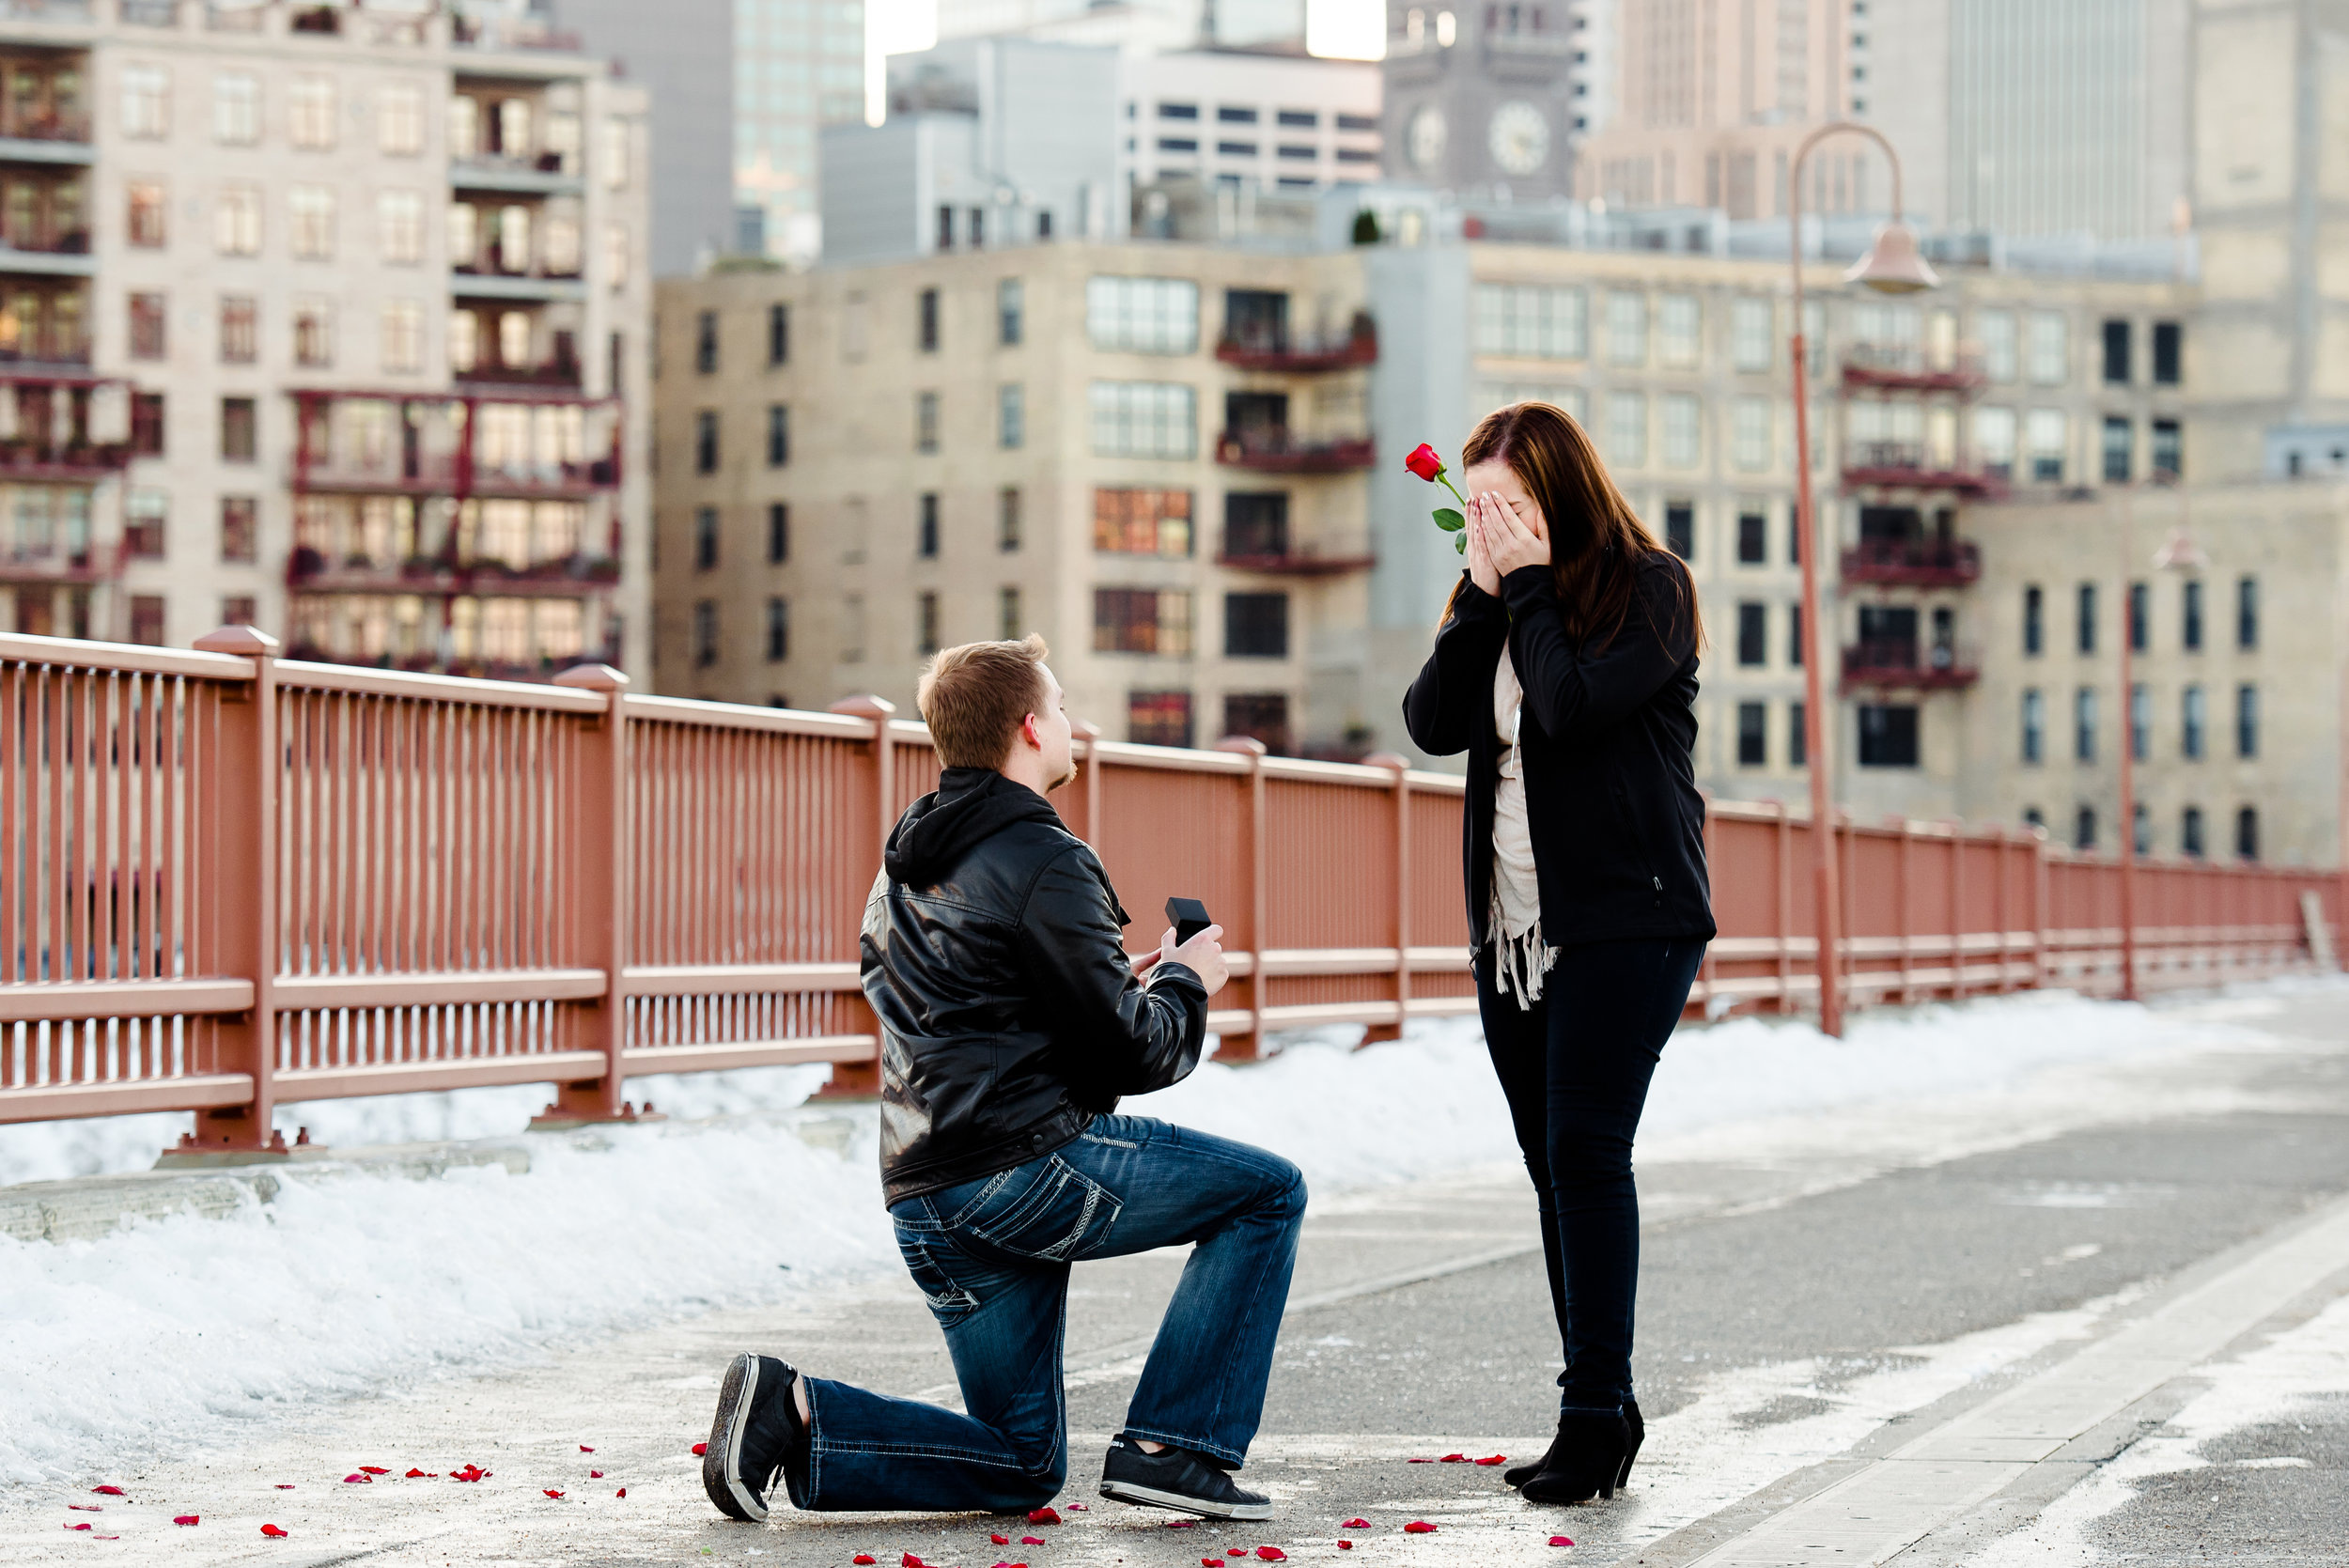 We absolutely love our photos, and can't thank Laura enough for capturing our proposal!